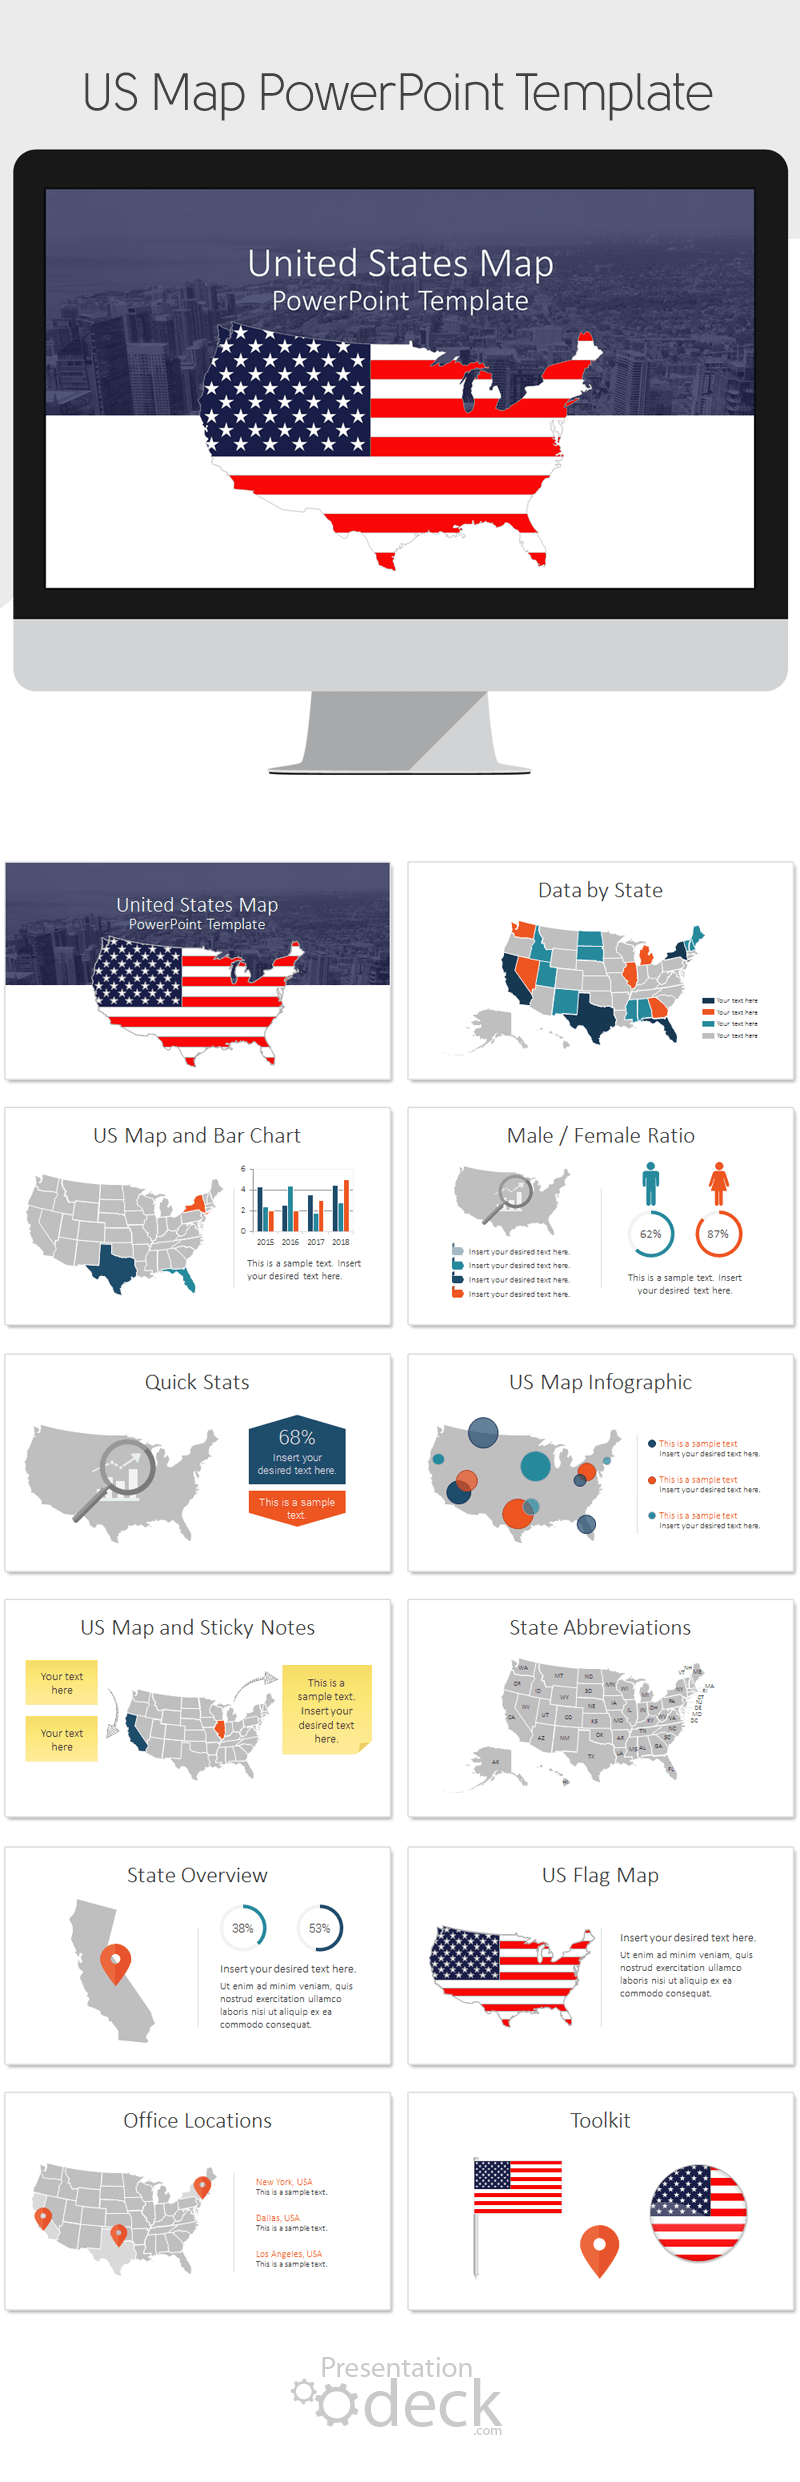 US Map PowerPoint Template Products Us Map And United States Map - Map of united states for powerpoint presentation